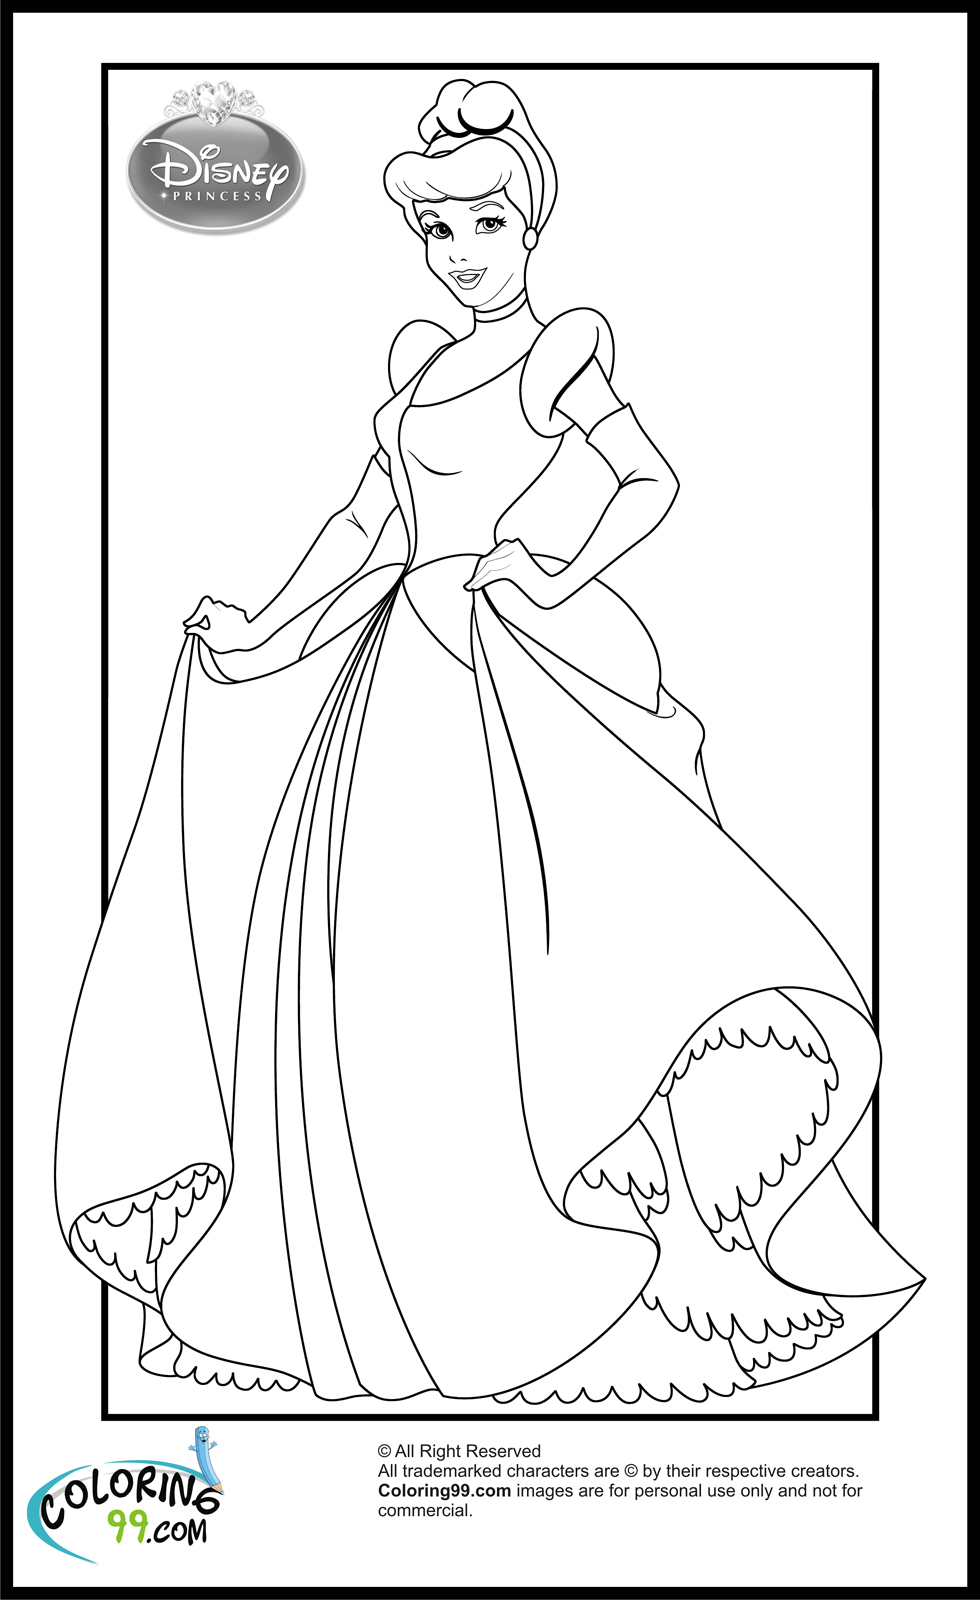 Disney princess cinderella coloring pages team colors for Cinderella coloring pages online